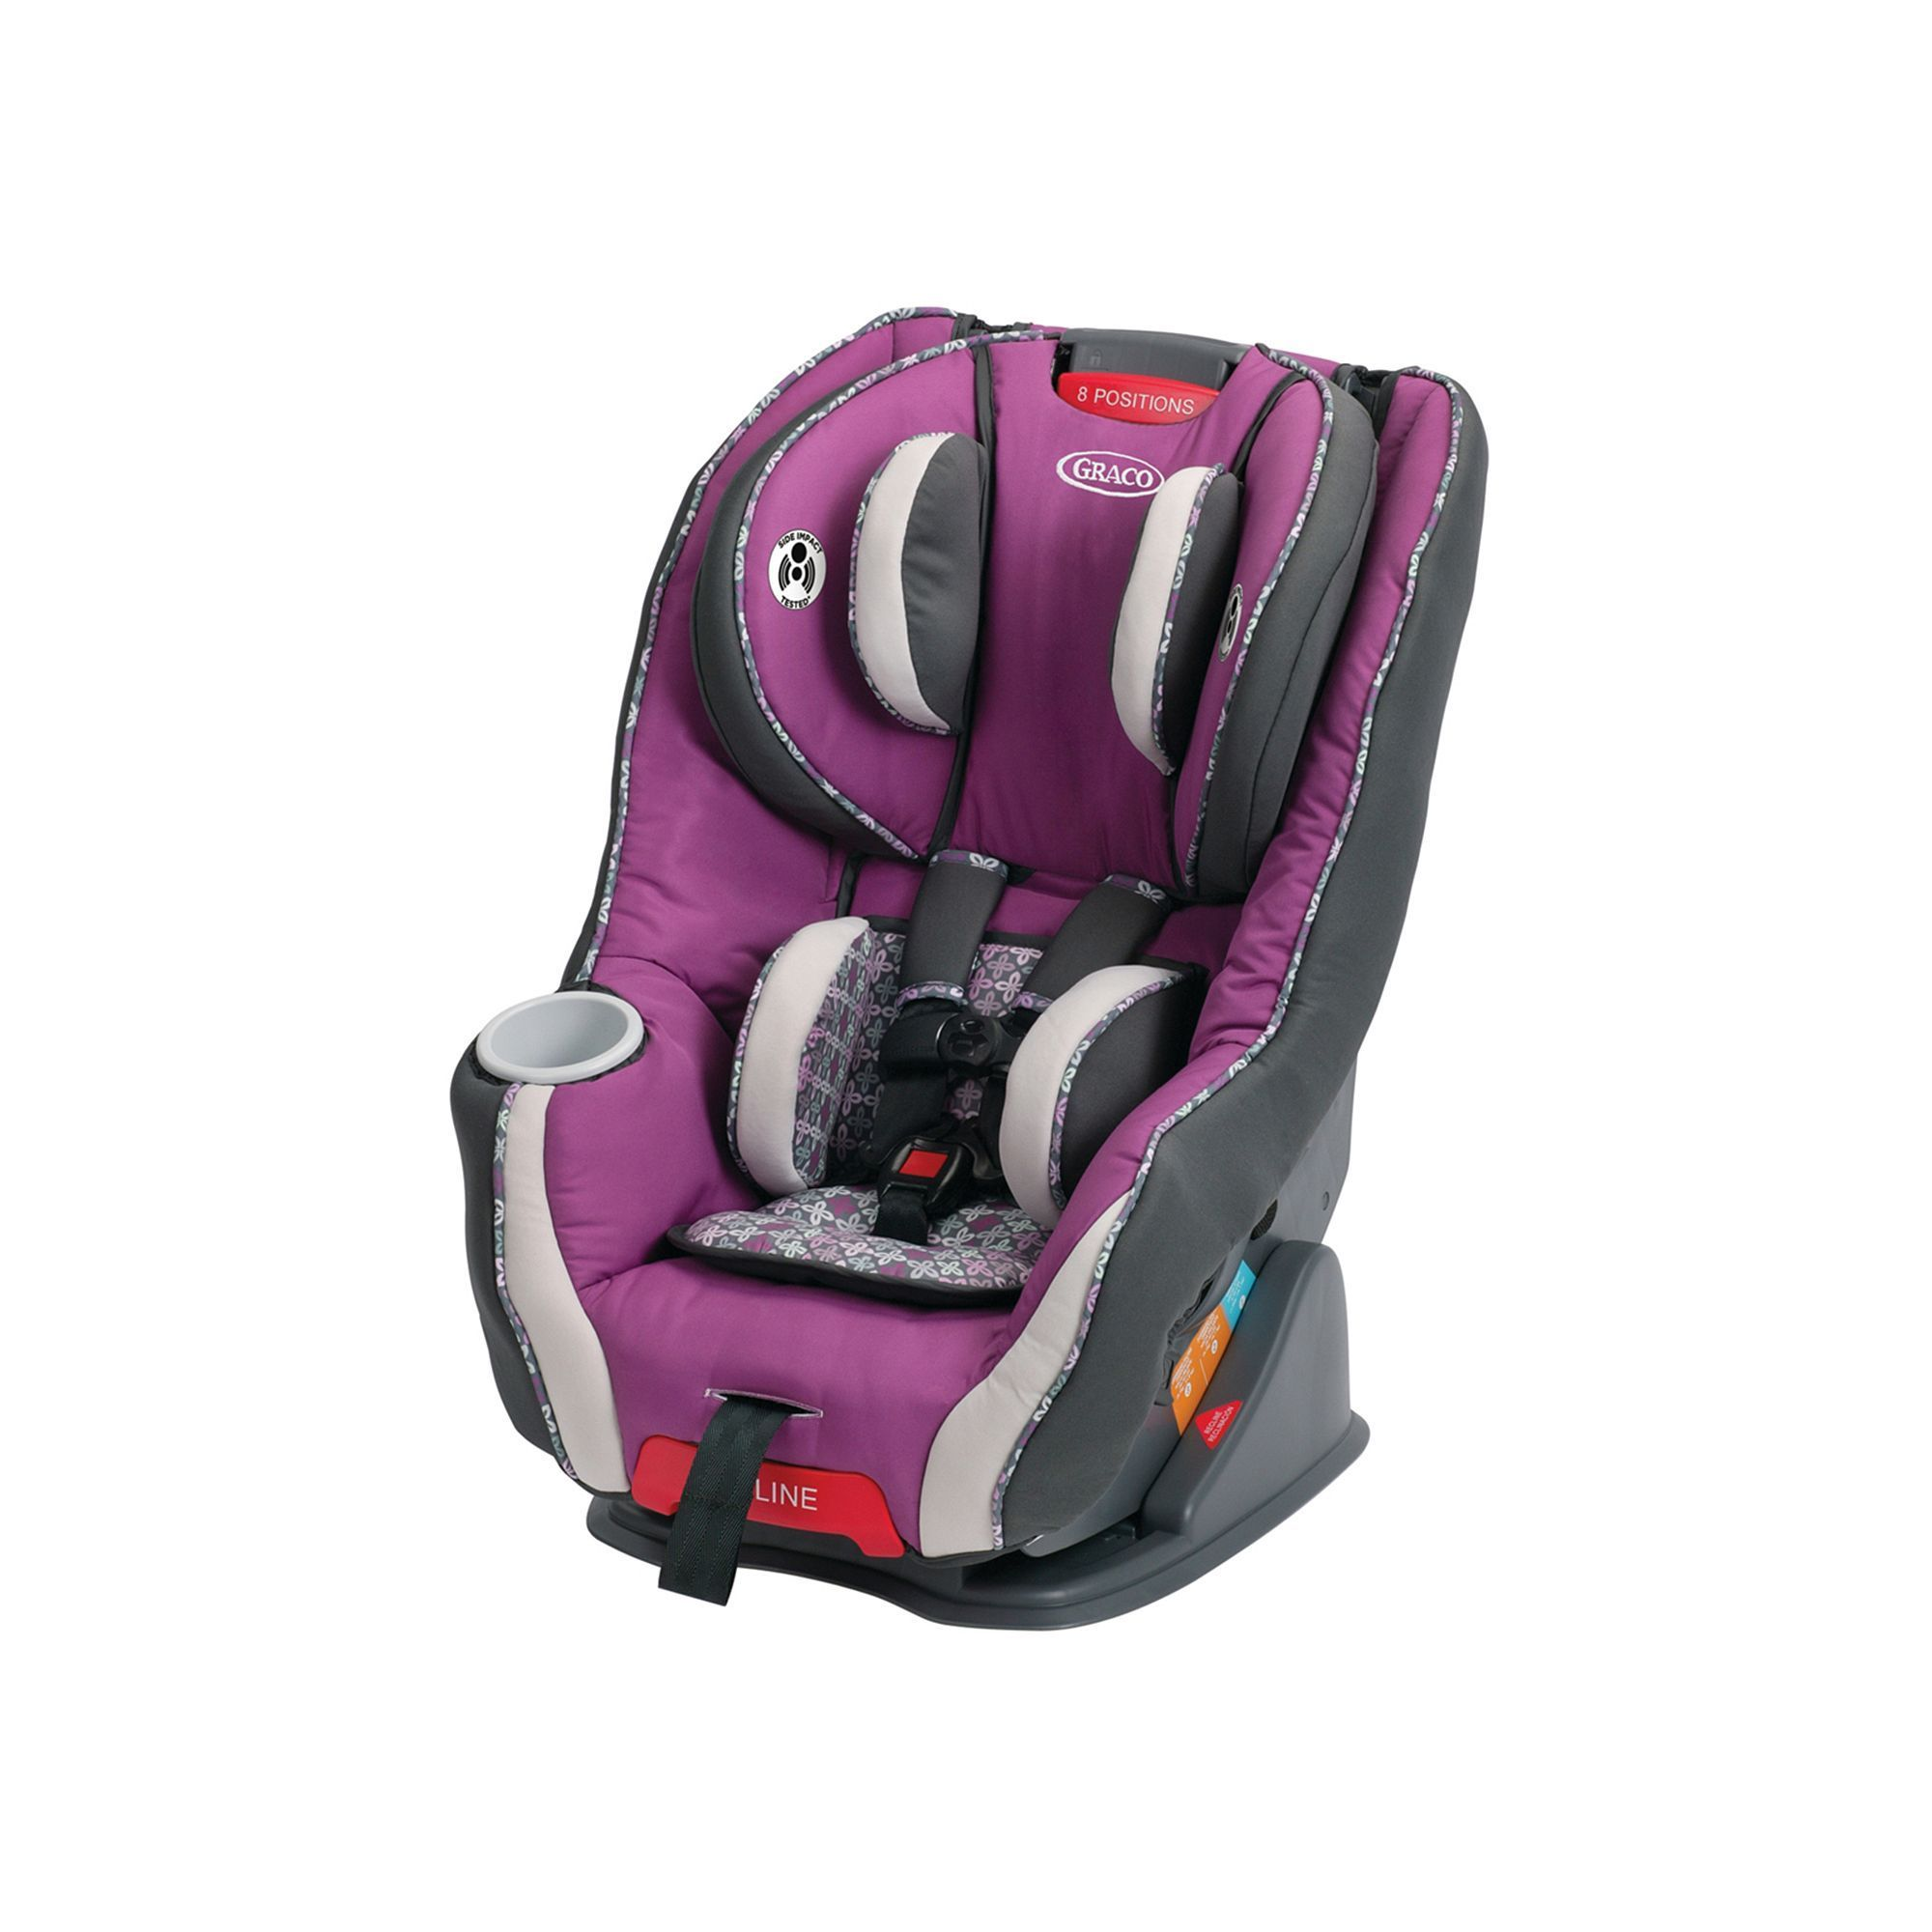 Medium Of Graco Size4me 65 Convertible Car Seat